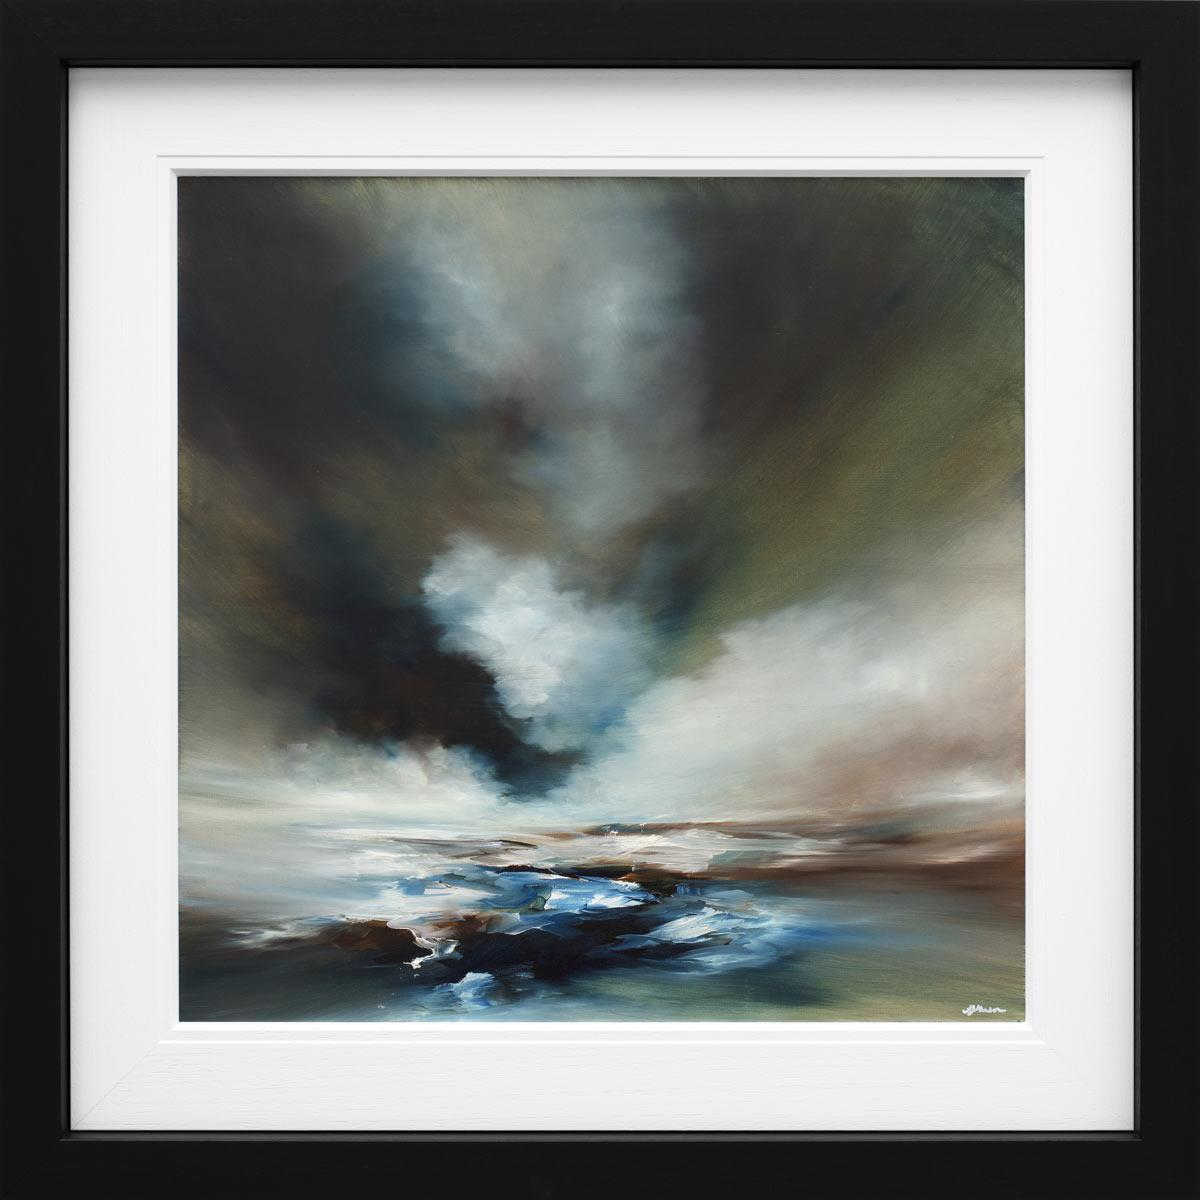 The Sea Meets the Sky Alison Johnson Framed